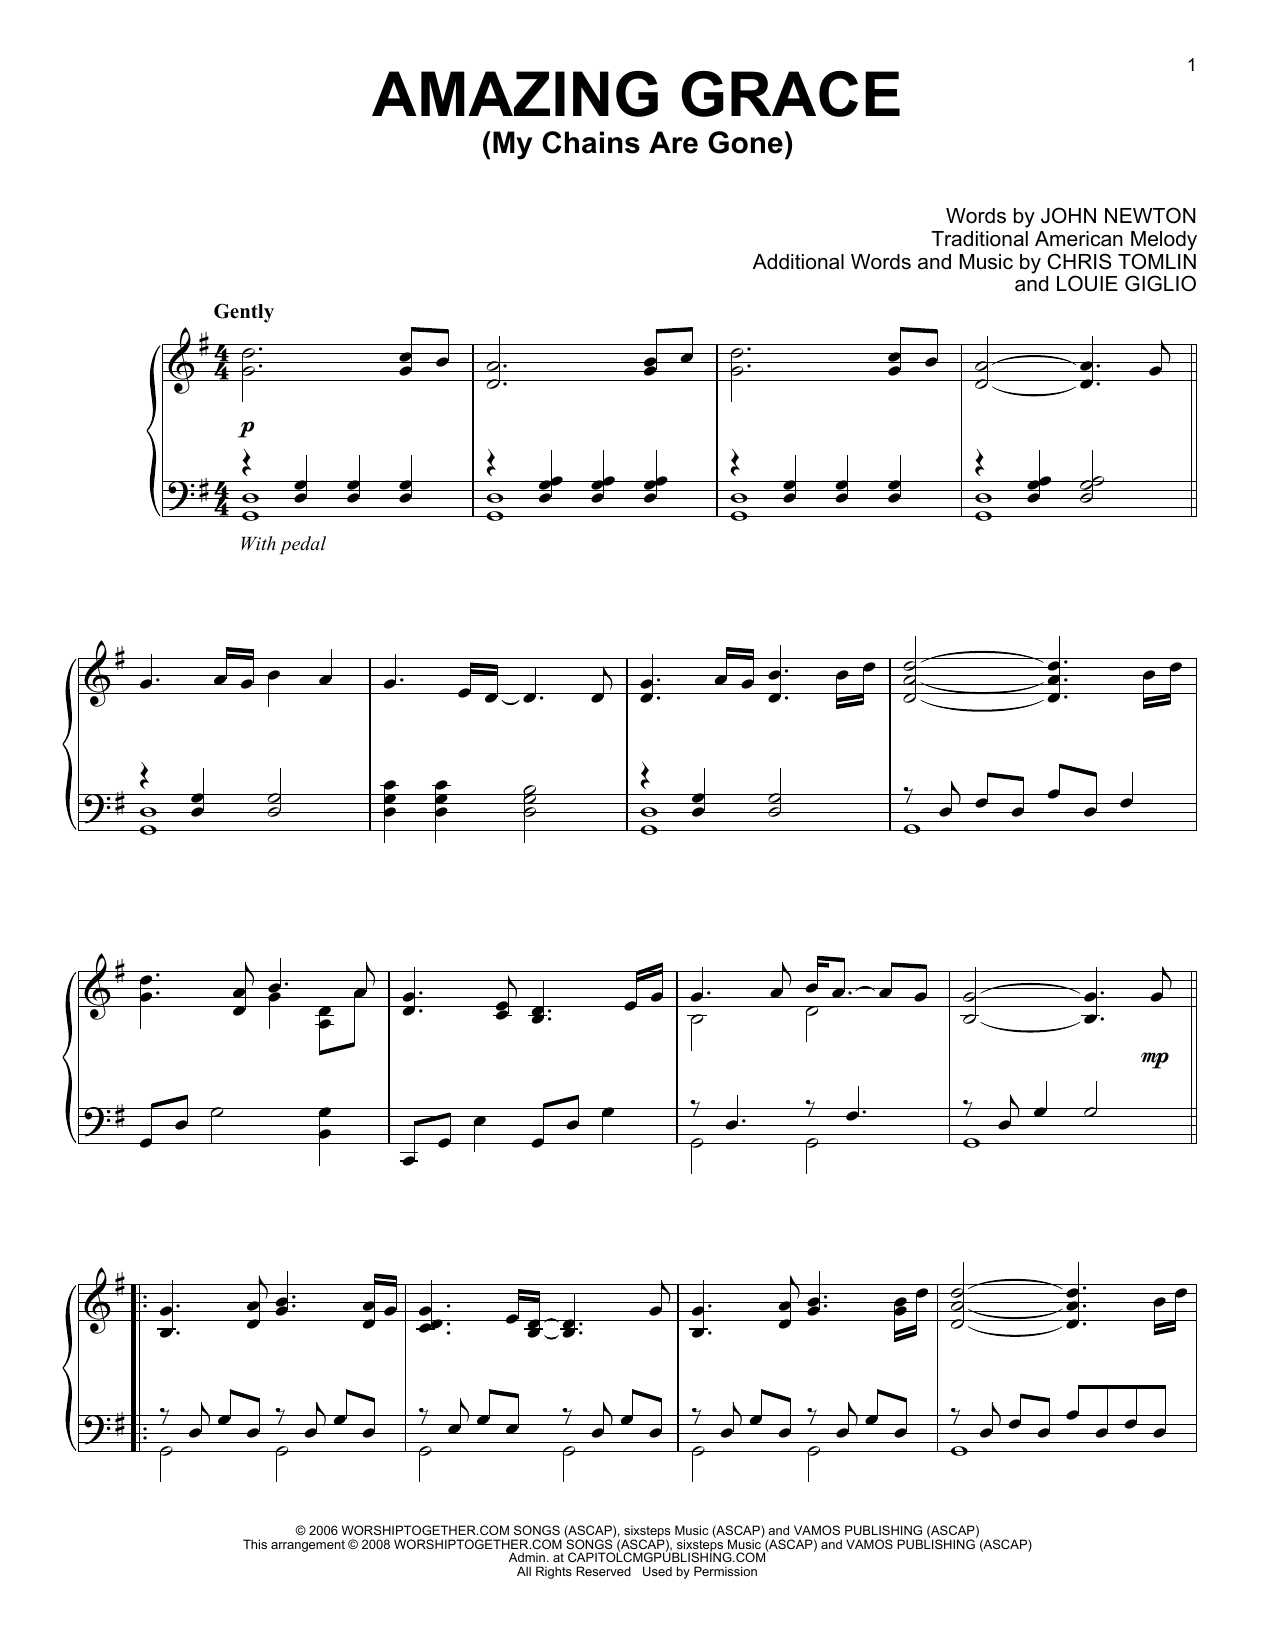 Piano broken vessels piano chords : Piano : amazing grace piano chords Amazing Grace as well as ...